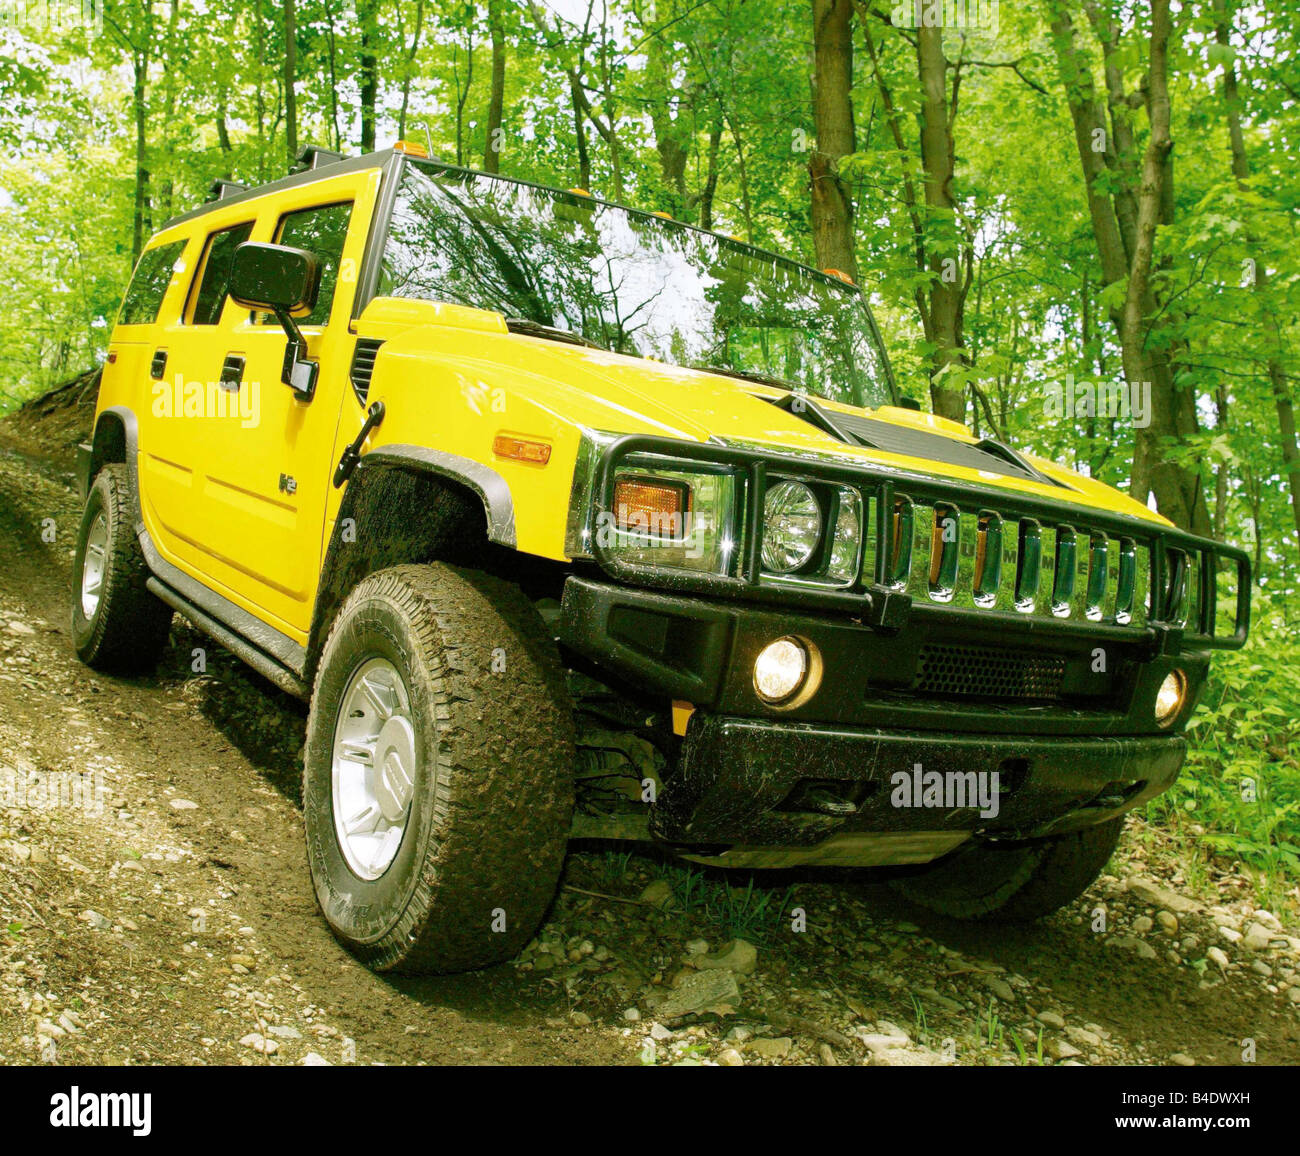 auto hummer h2 cross country fahrzeug modell jahr 2001. Black Bedroom Furniture Sets. Home Design Ideas